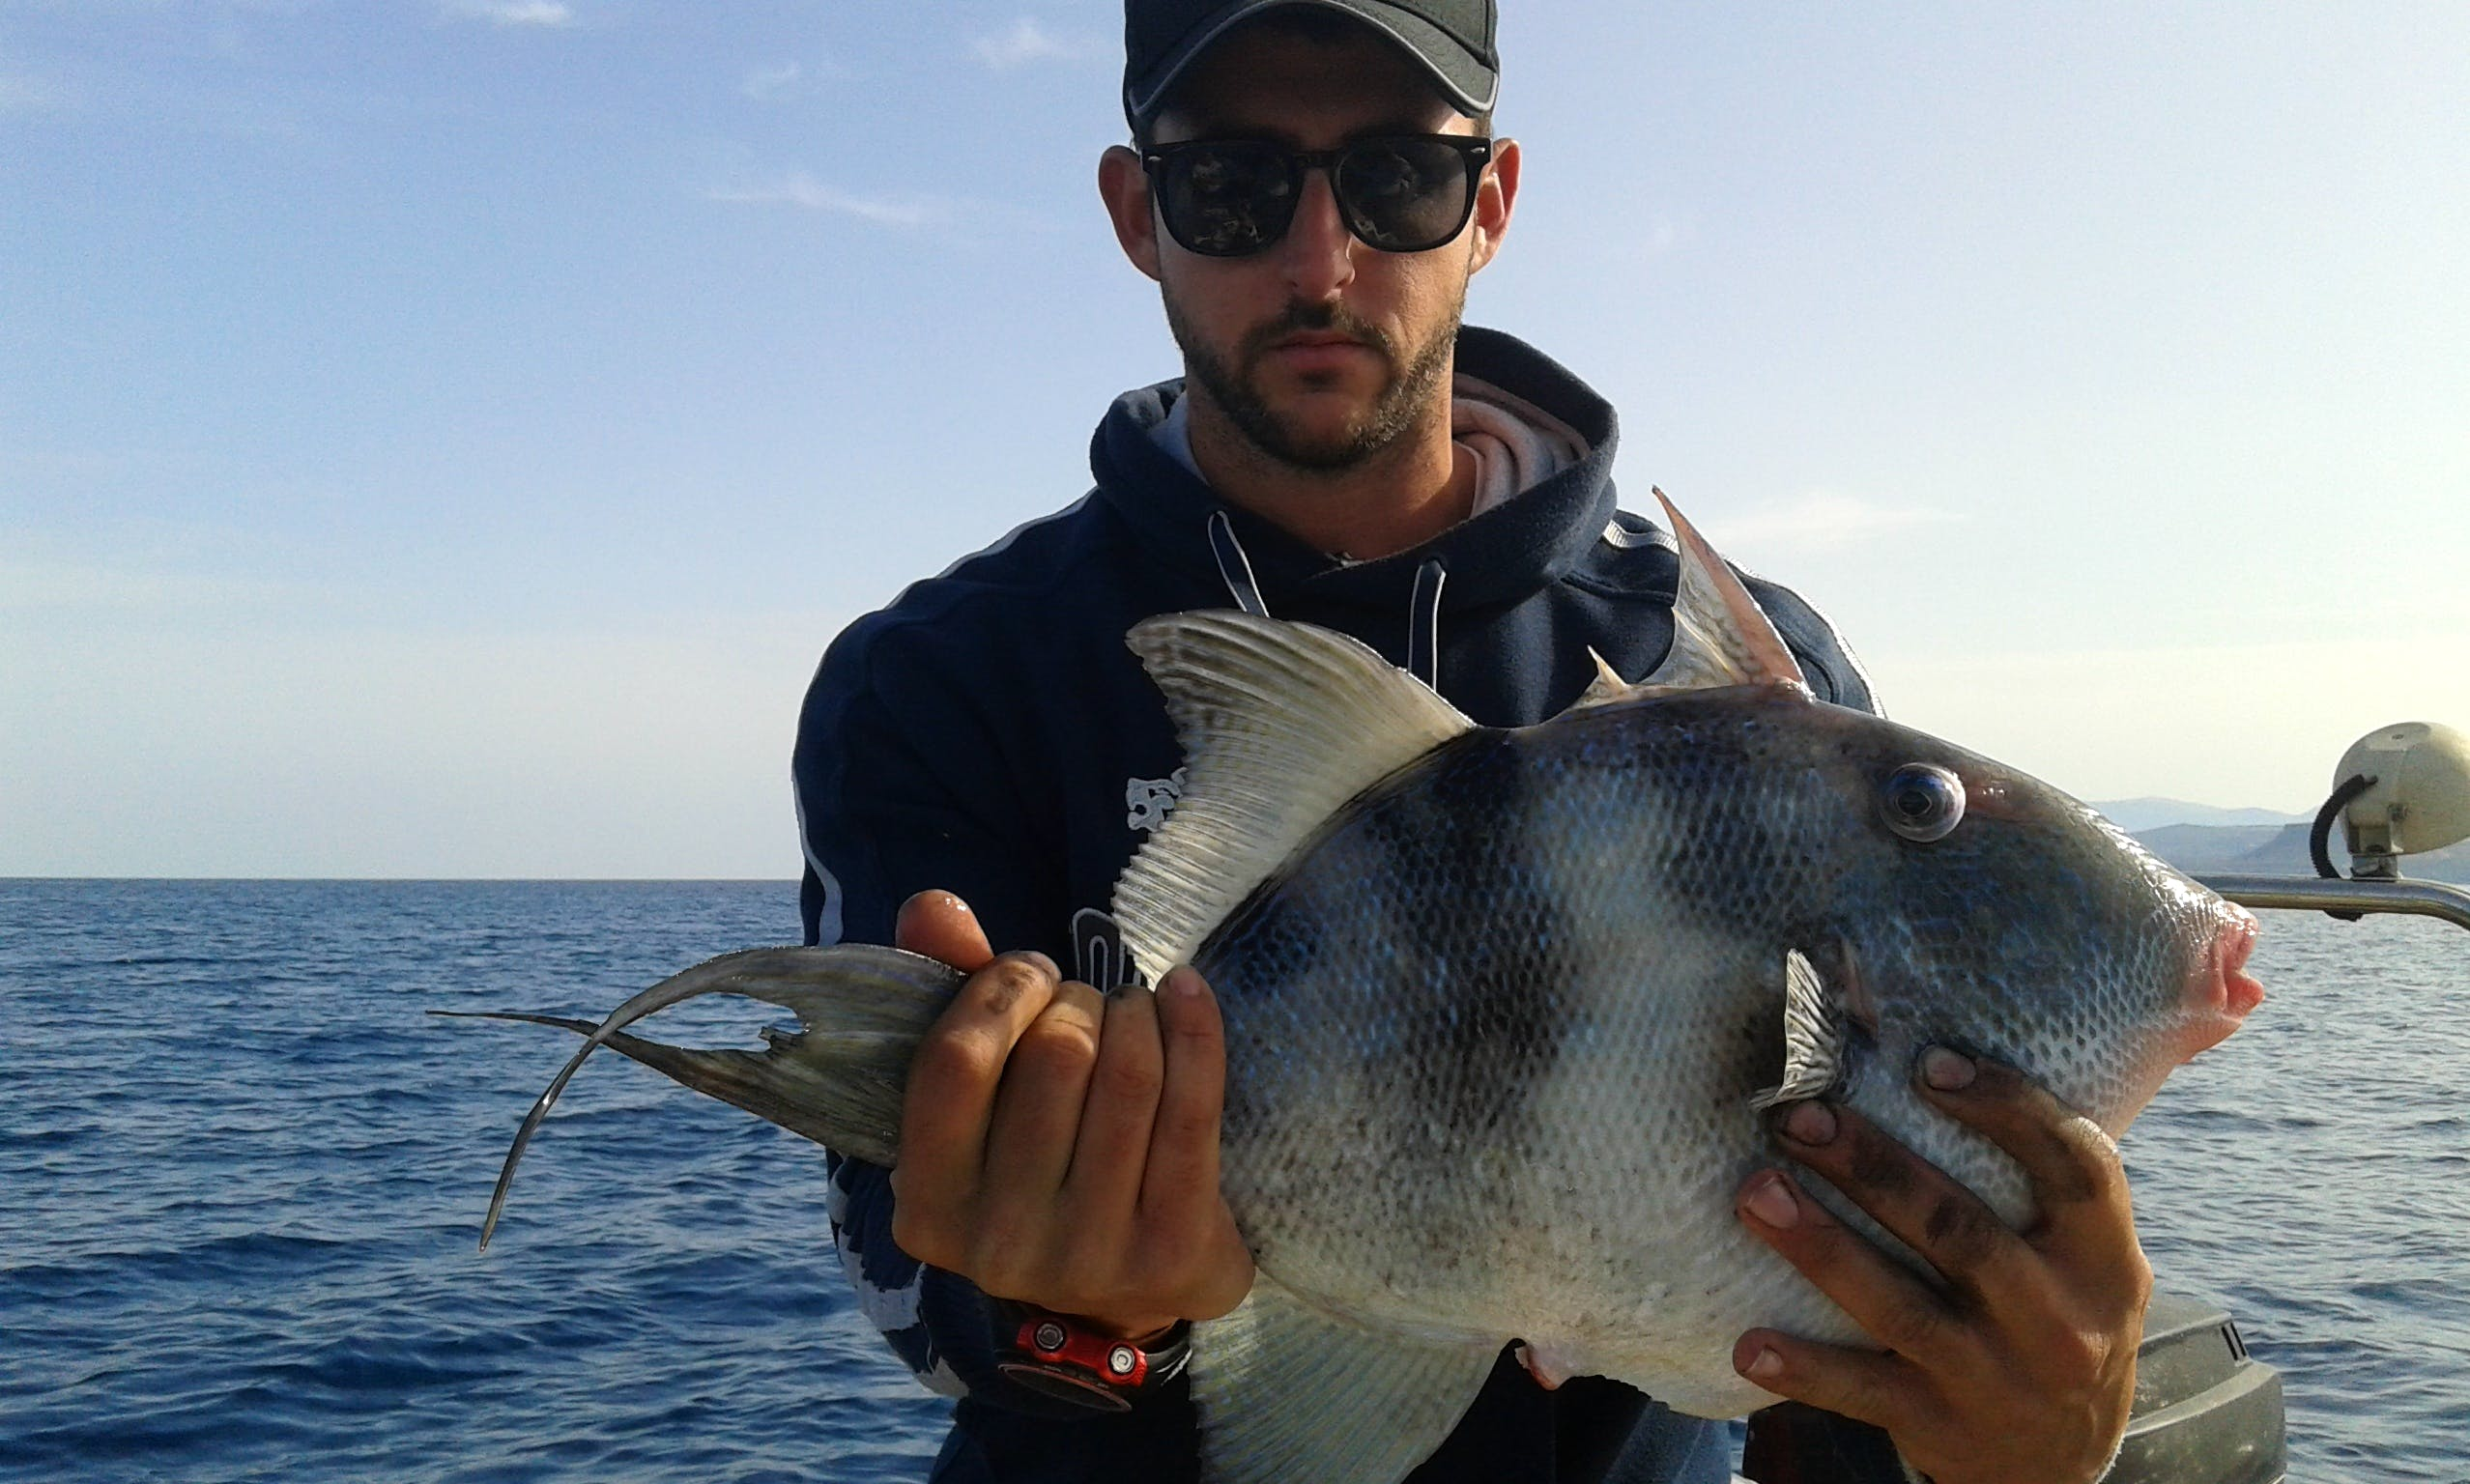 Deck Boat Fishing Charter in Agia Pelagia with Andreas